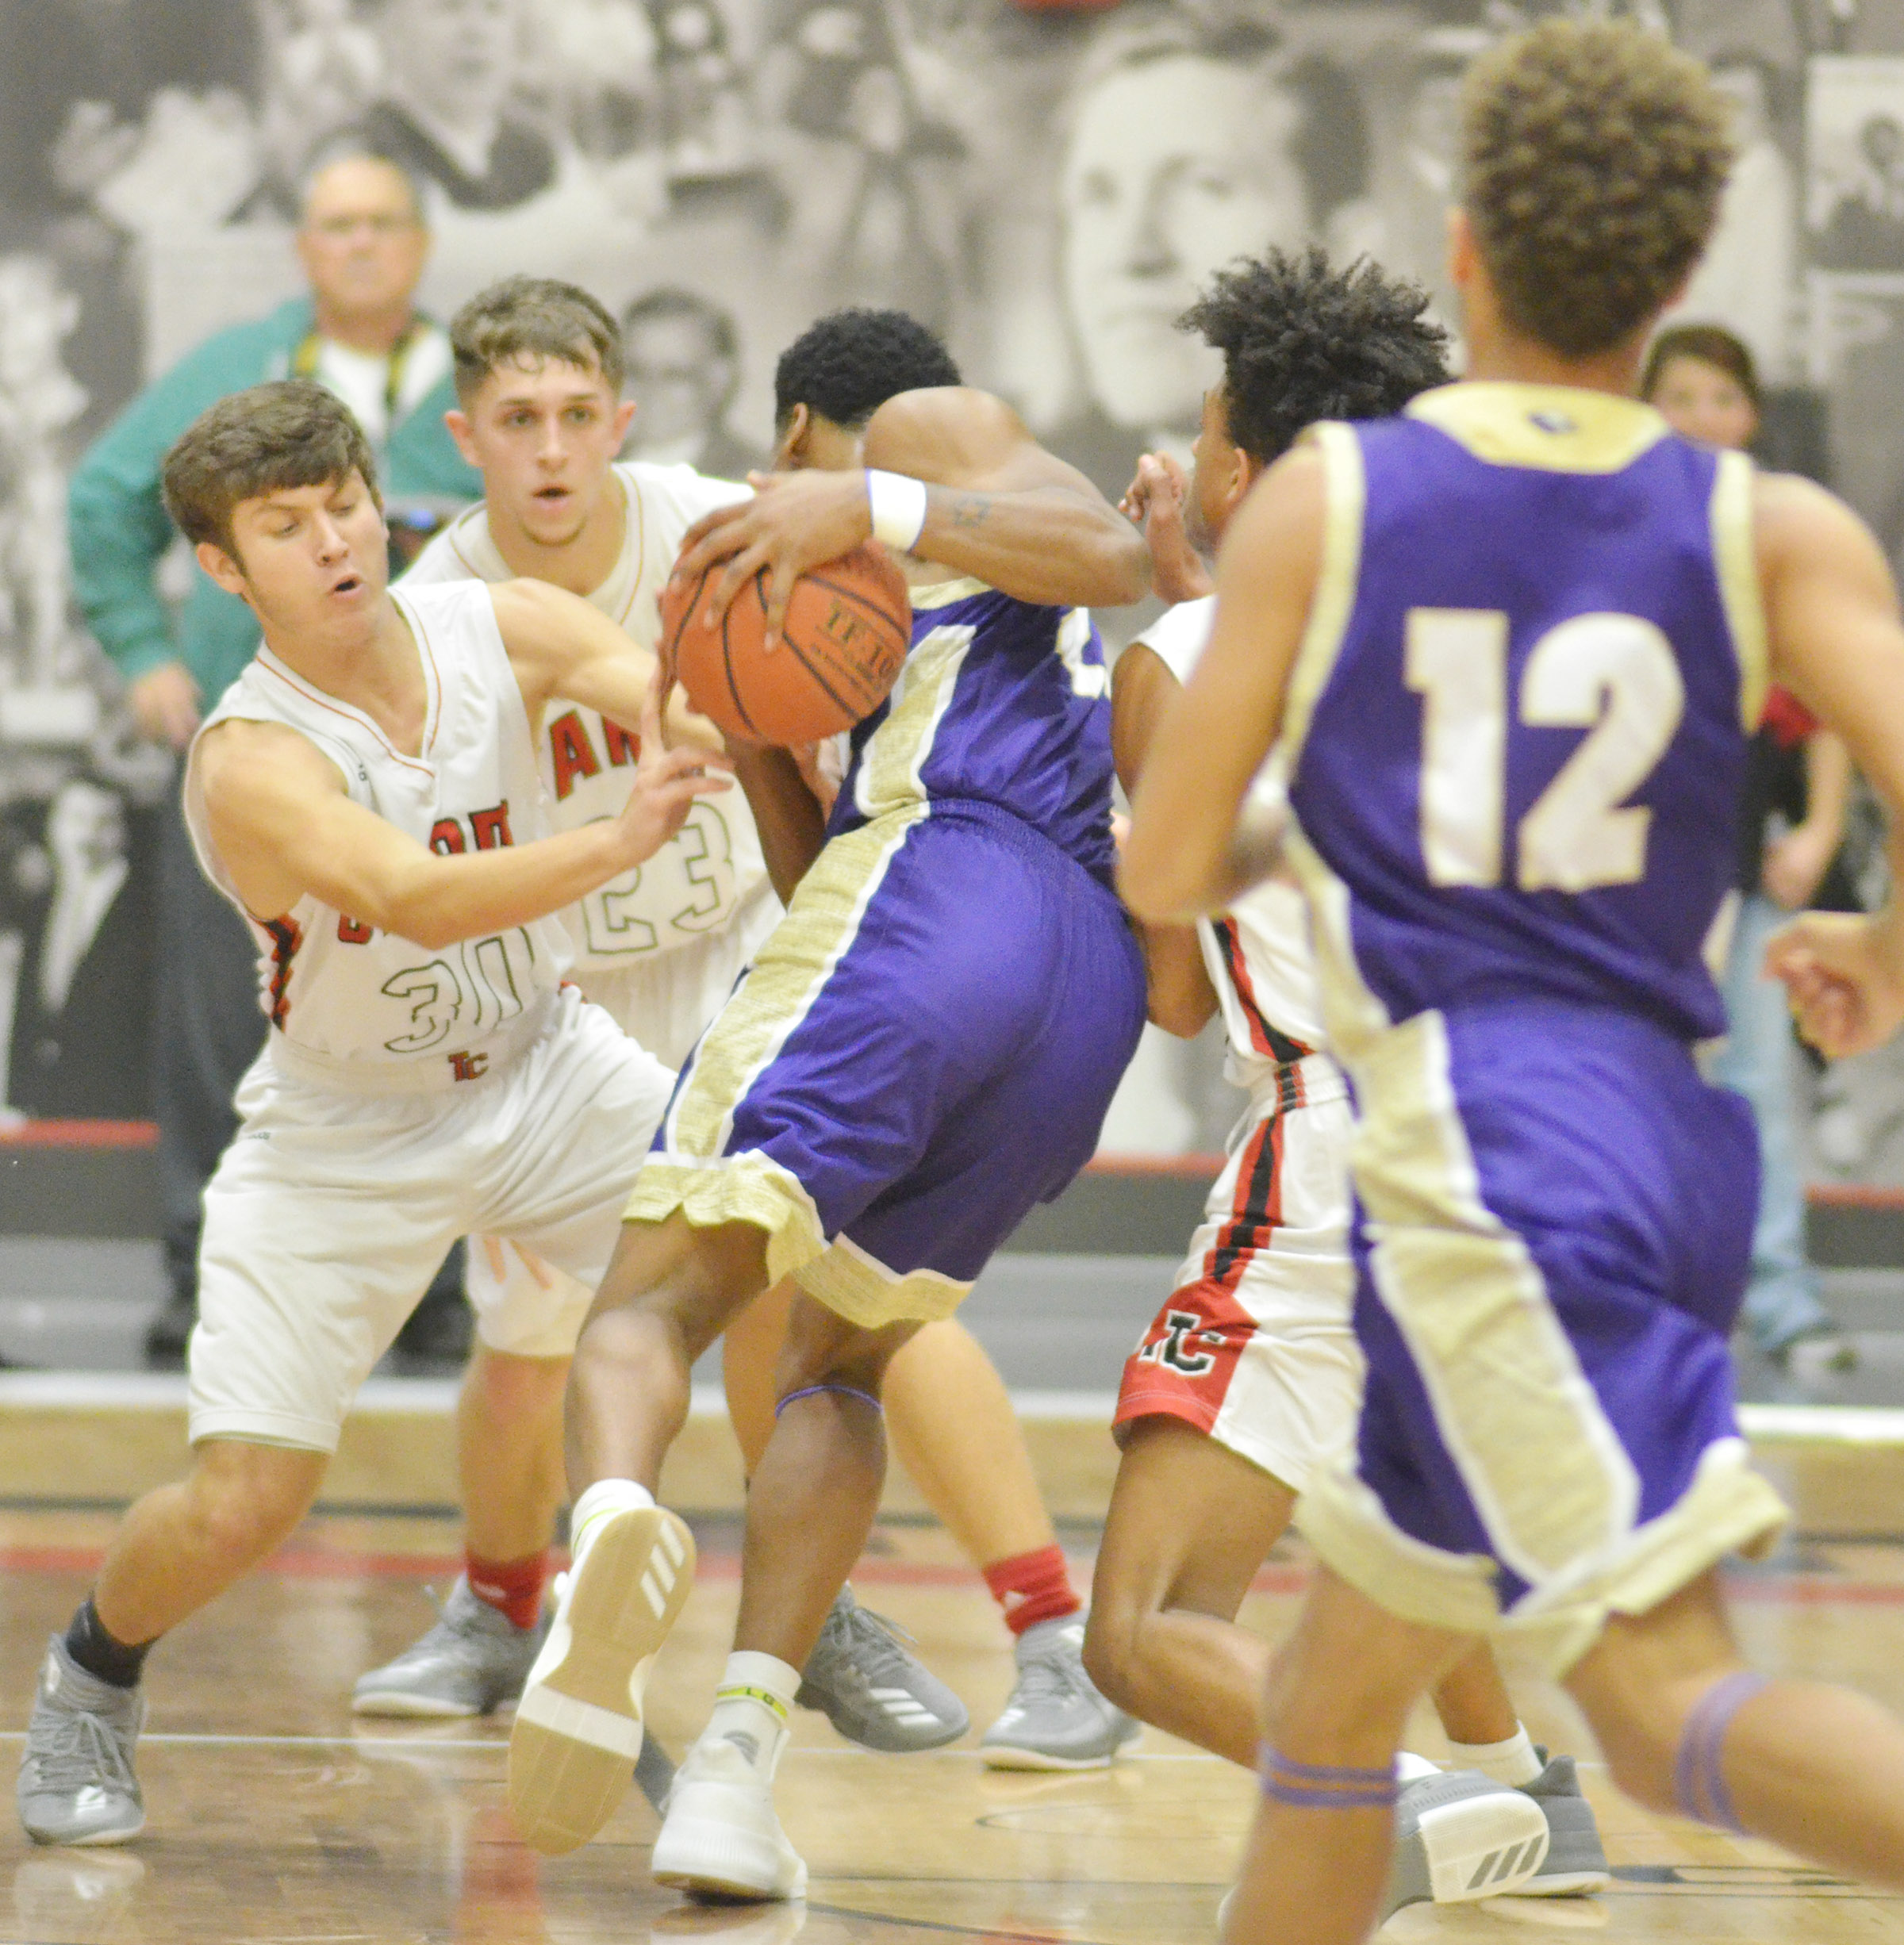 CHS junior Taj Sanders protects the ball.